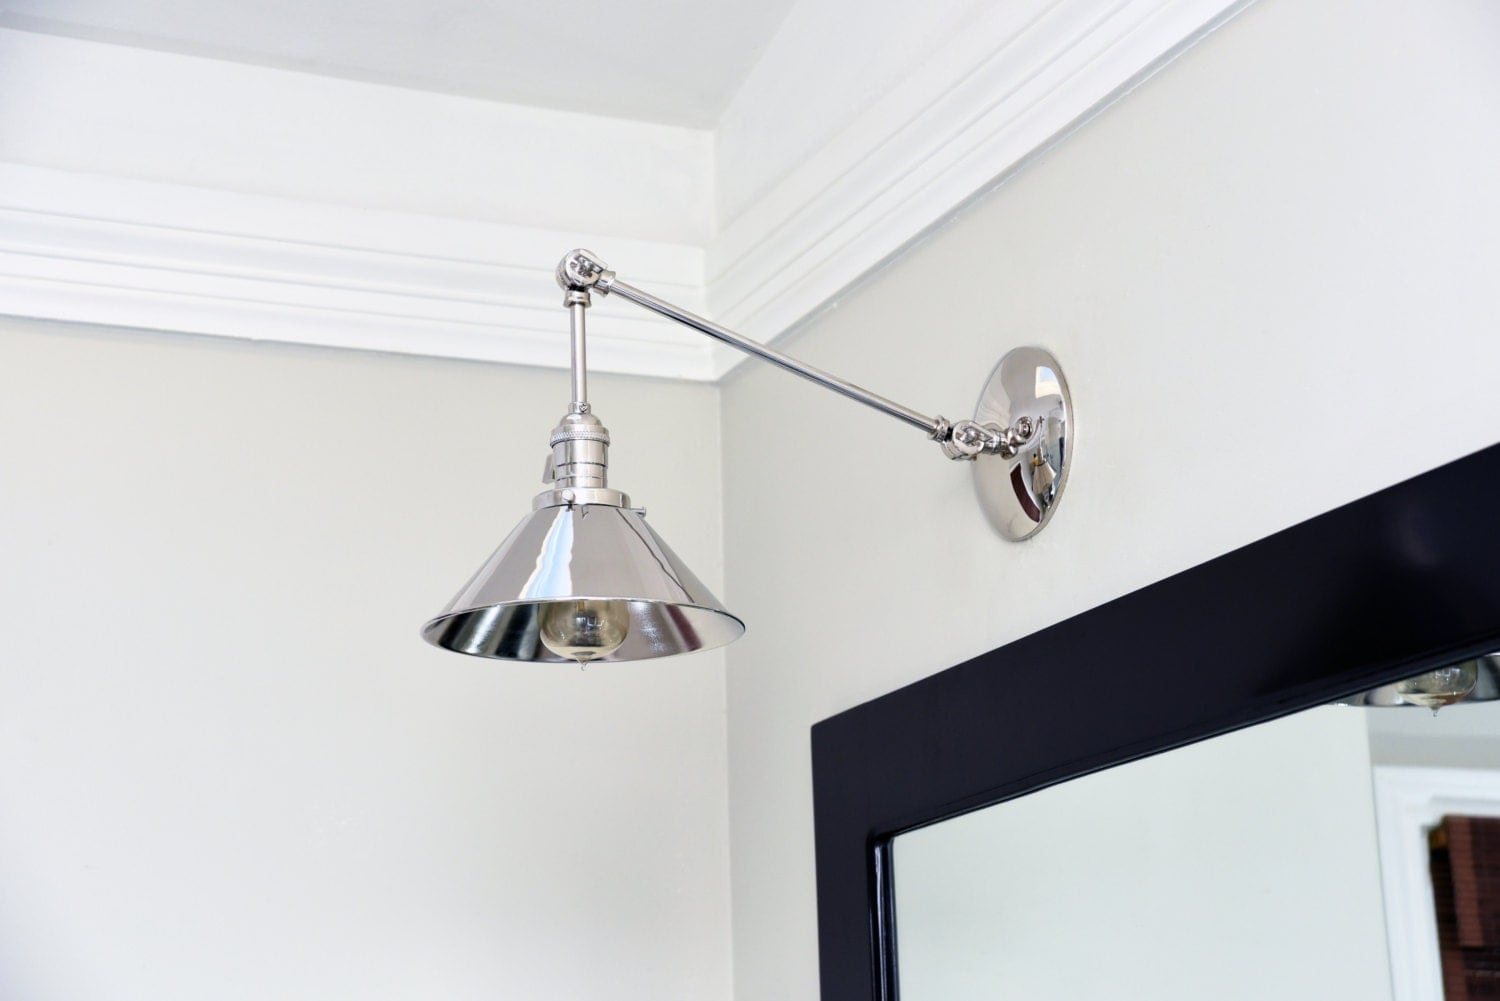 Modern Ridged Shade Bath Sconce 2 Light: Polished Nickel Articulating Boom Wall Sconce Metal Shade